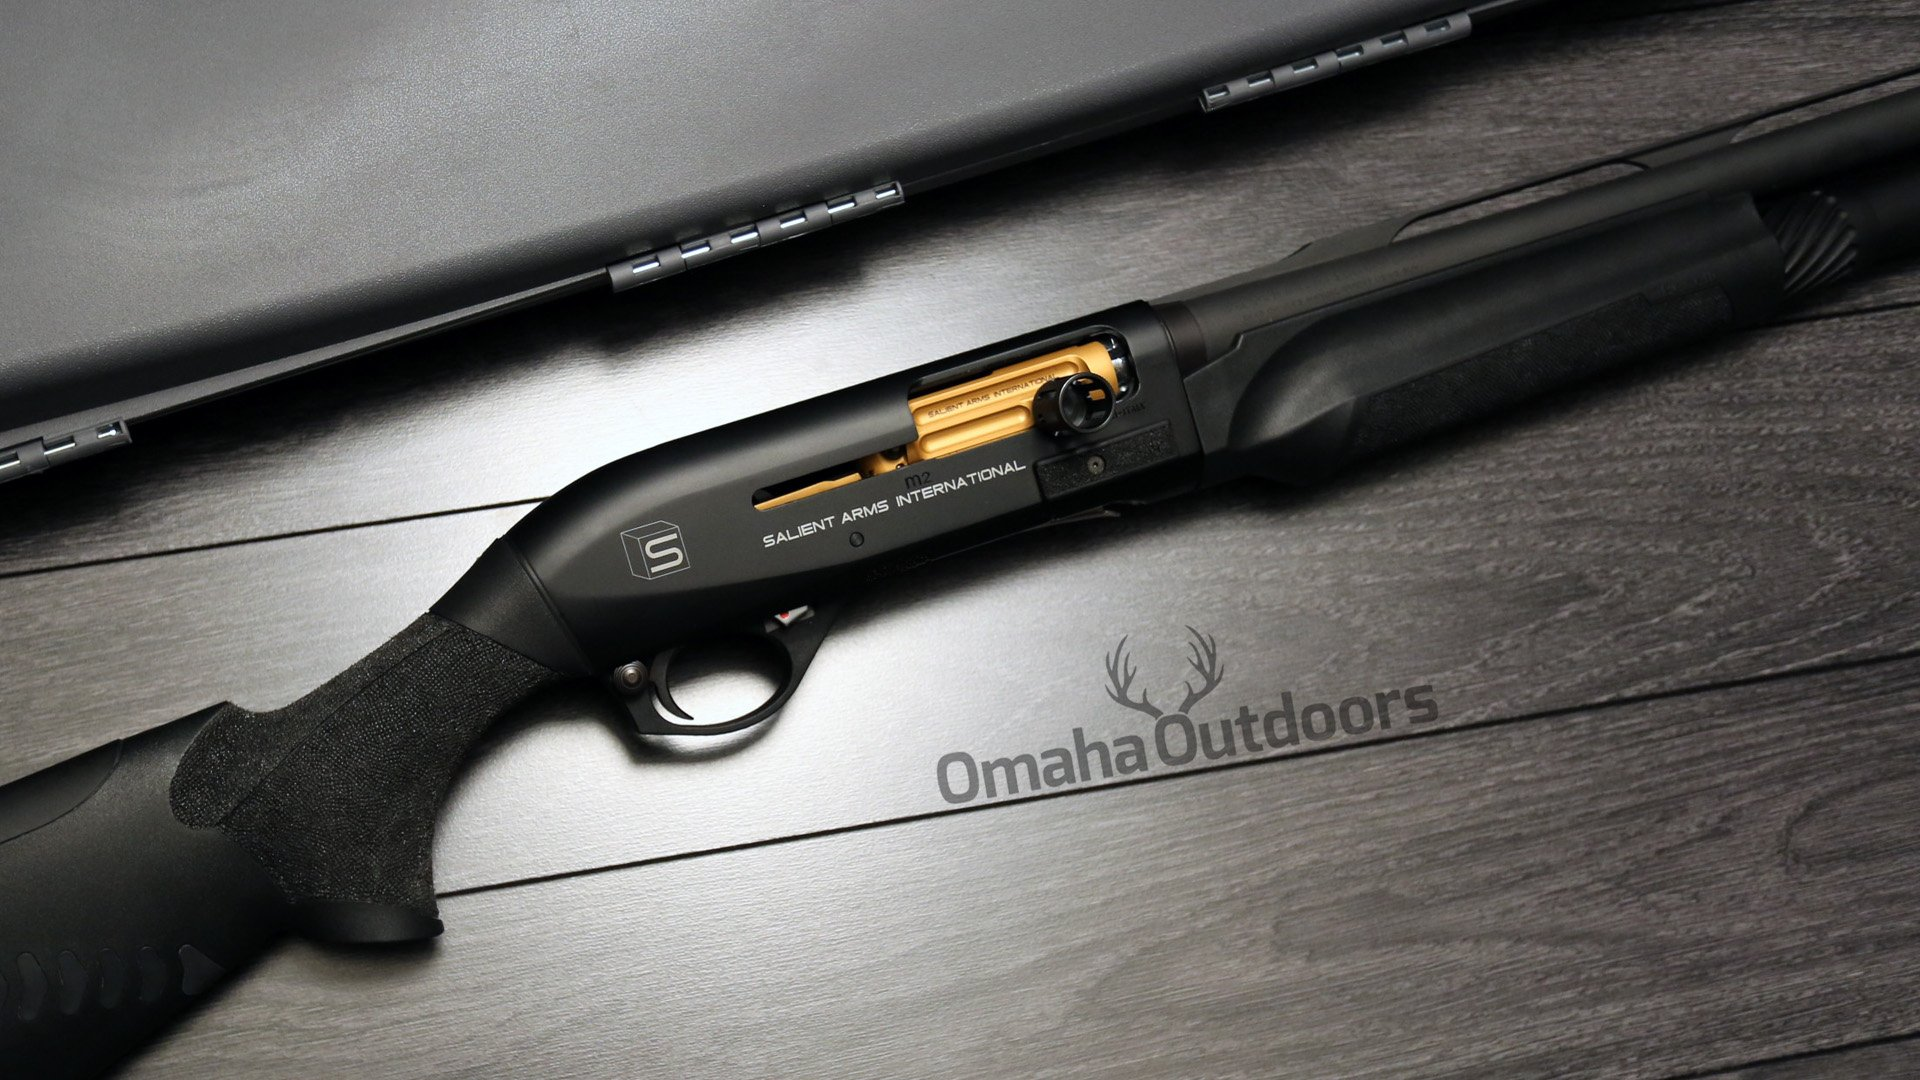 Salient Arms International Benelli M2 Packages